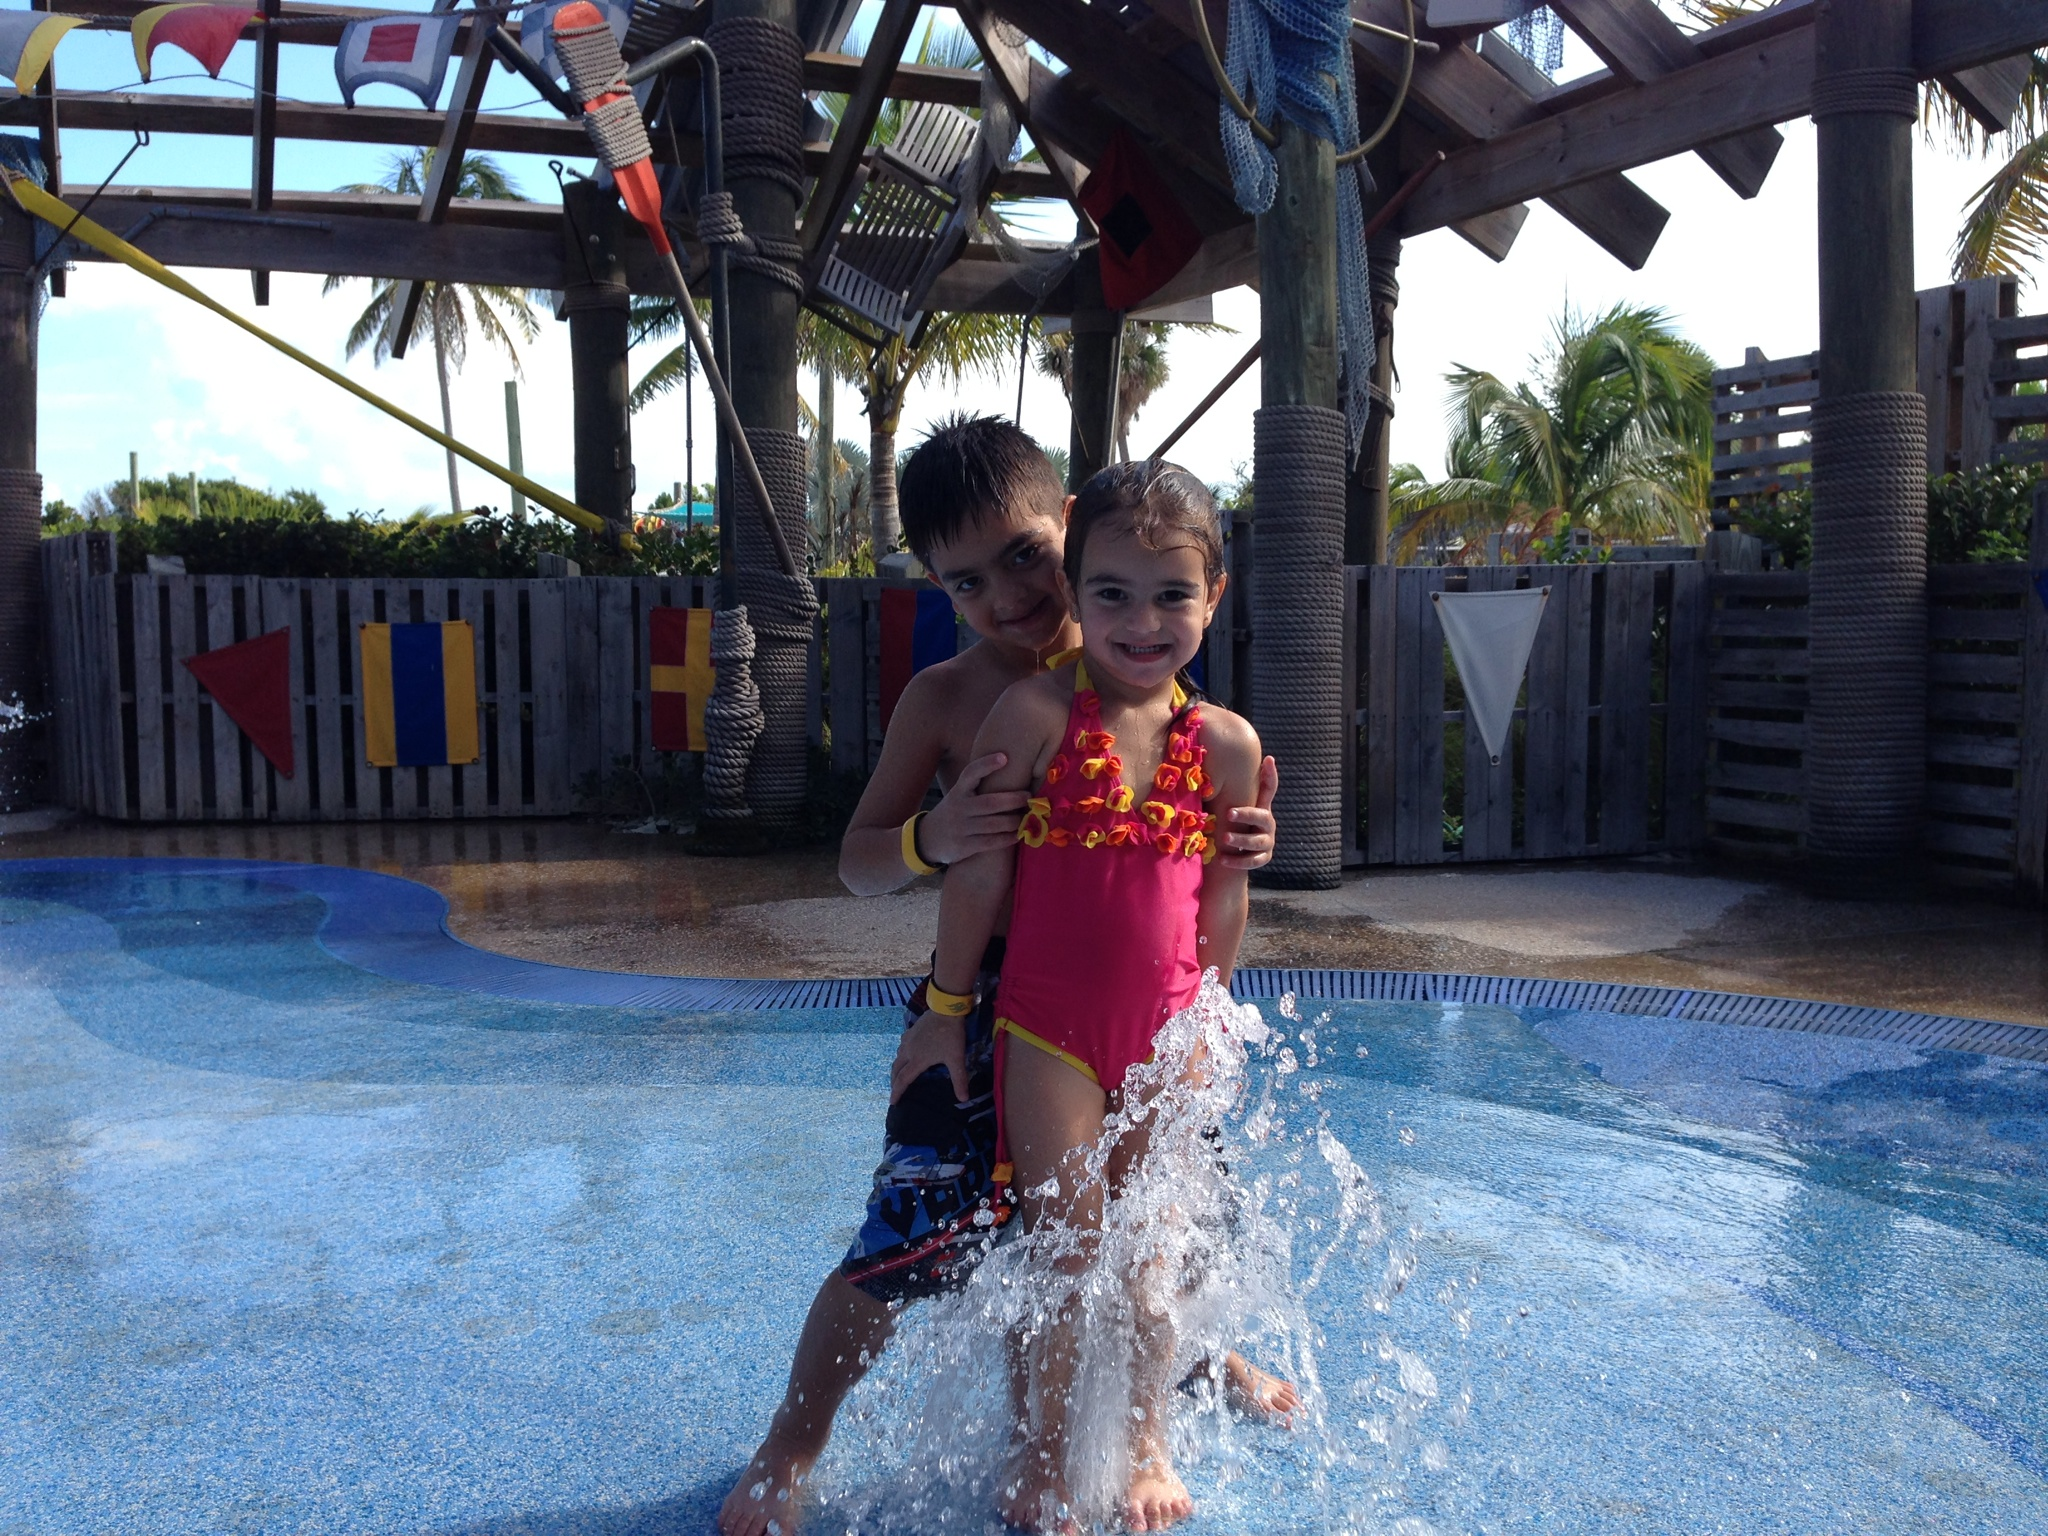 Splash Pad kids